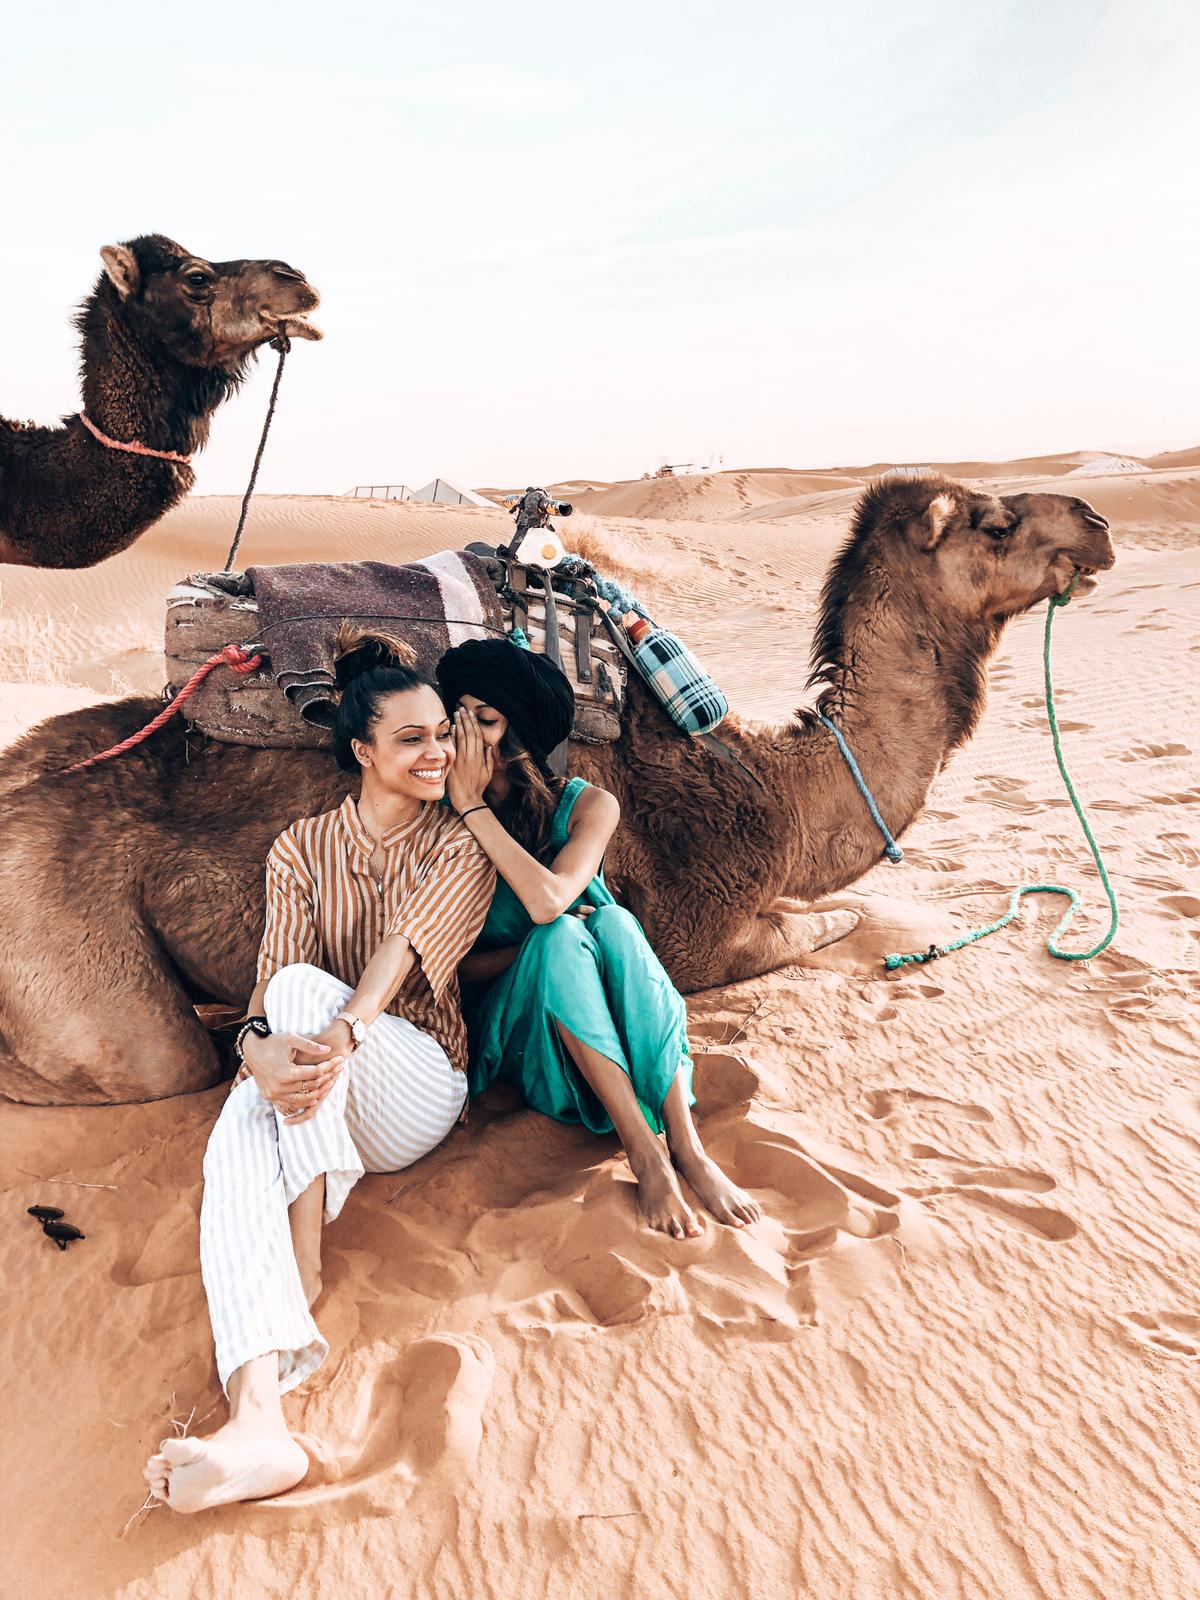 September 20 - September 28, 2019 - 8 Nights / 9 DaysGroup Size: 16*SOLD OUT*Marrakech is a girl's dream come true. From roaming the colourful Souk markets to bathing in a traditional hammam, we can't wait to take you there!Our trip is made to indulge you in the Moroccan culture and have your soul filled with Moroccan memories. All our tours are paired with experienced local guides to keep everything as authentic as possible.All dining experiences will be paired between dining at the private villa, curated spots in the Medina, along with other local food stops.Expect to have a day or two to relax and unwind at your own leisure where you can go shopping, enjoy a traditional hammam, or even select an add on experience such as a Hot Air Balloon ride.Here's a little look into what you can expect:*Private Villa Accommodations, Sunset Camel Trek, Star Gazing in our Luxury Camp in the Sahara Desert, Drive through the Atlas Mountains and more**An Experience and Adventure Packed Itinerary Customized with Authentic & Local Experiences*